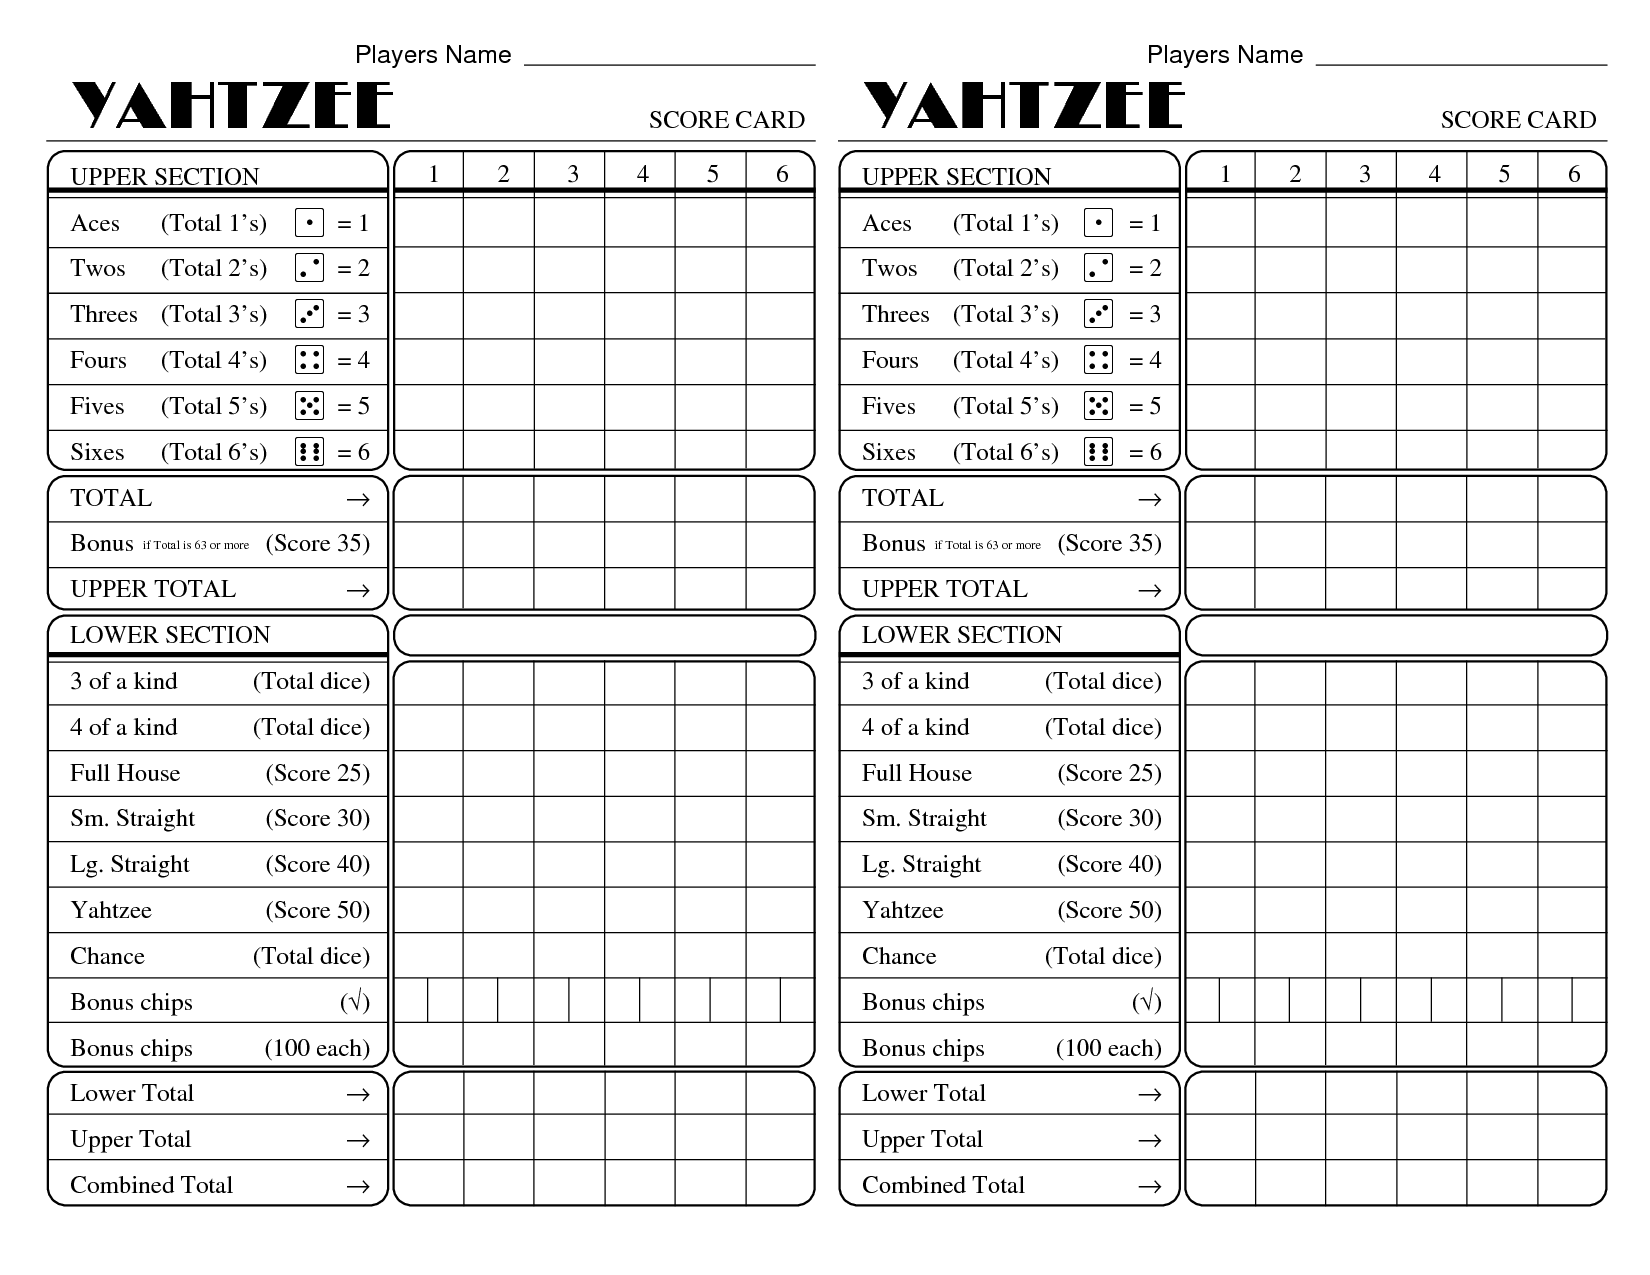 graphic about Yahtzee Sheets Printable identify Printable+Yahtzee+Ranking+Sheets For The Kiddos Yahtzee